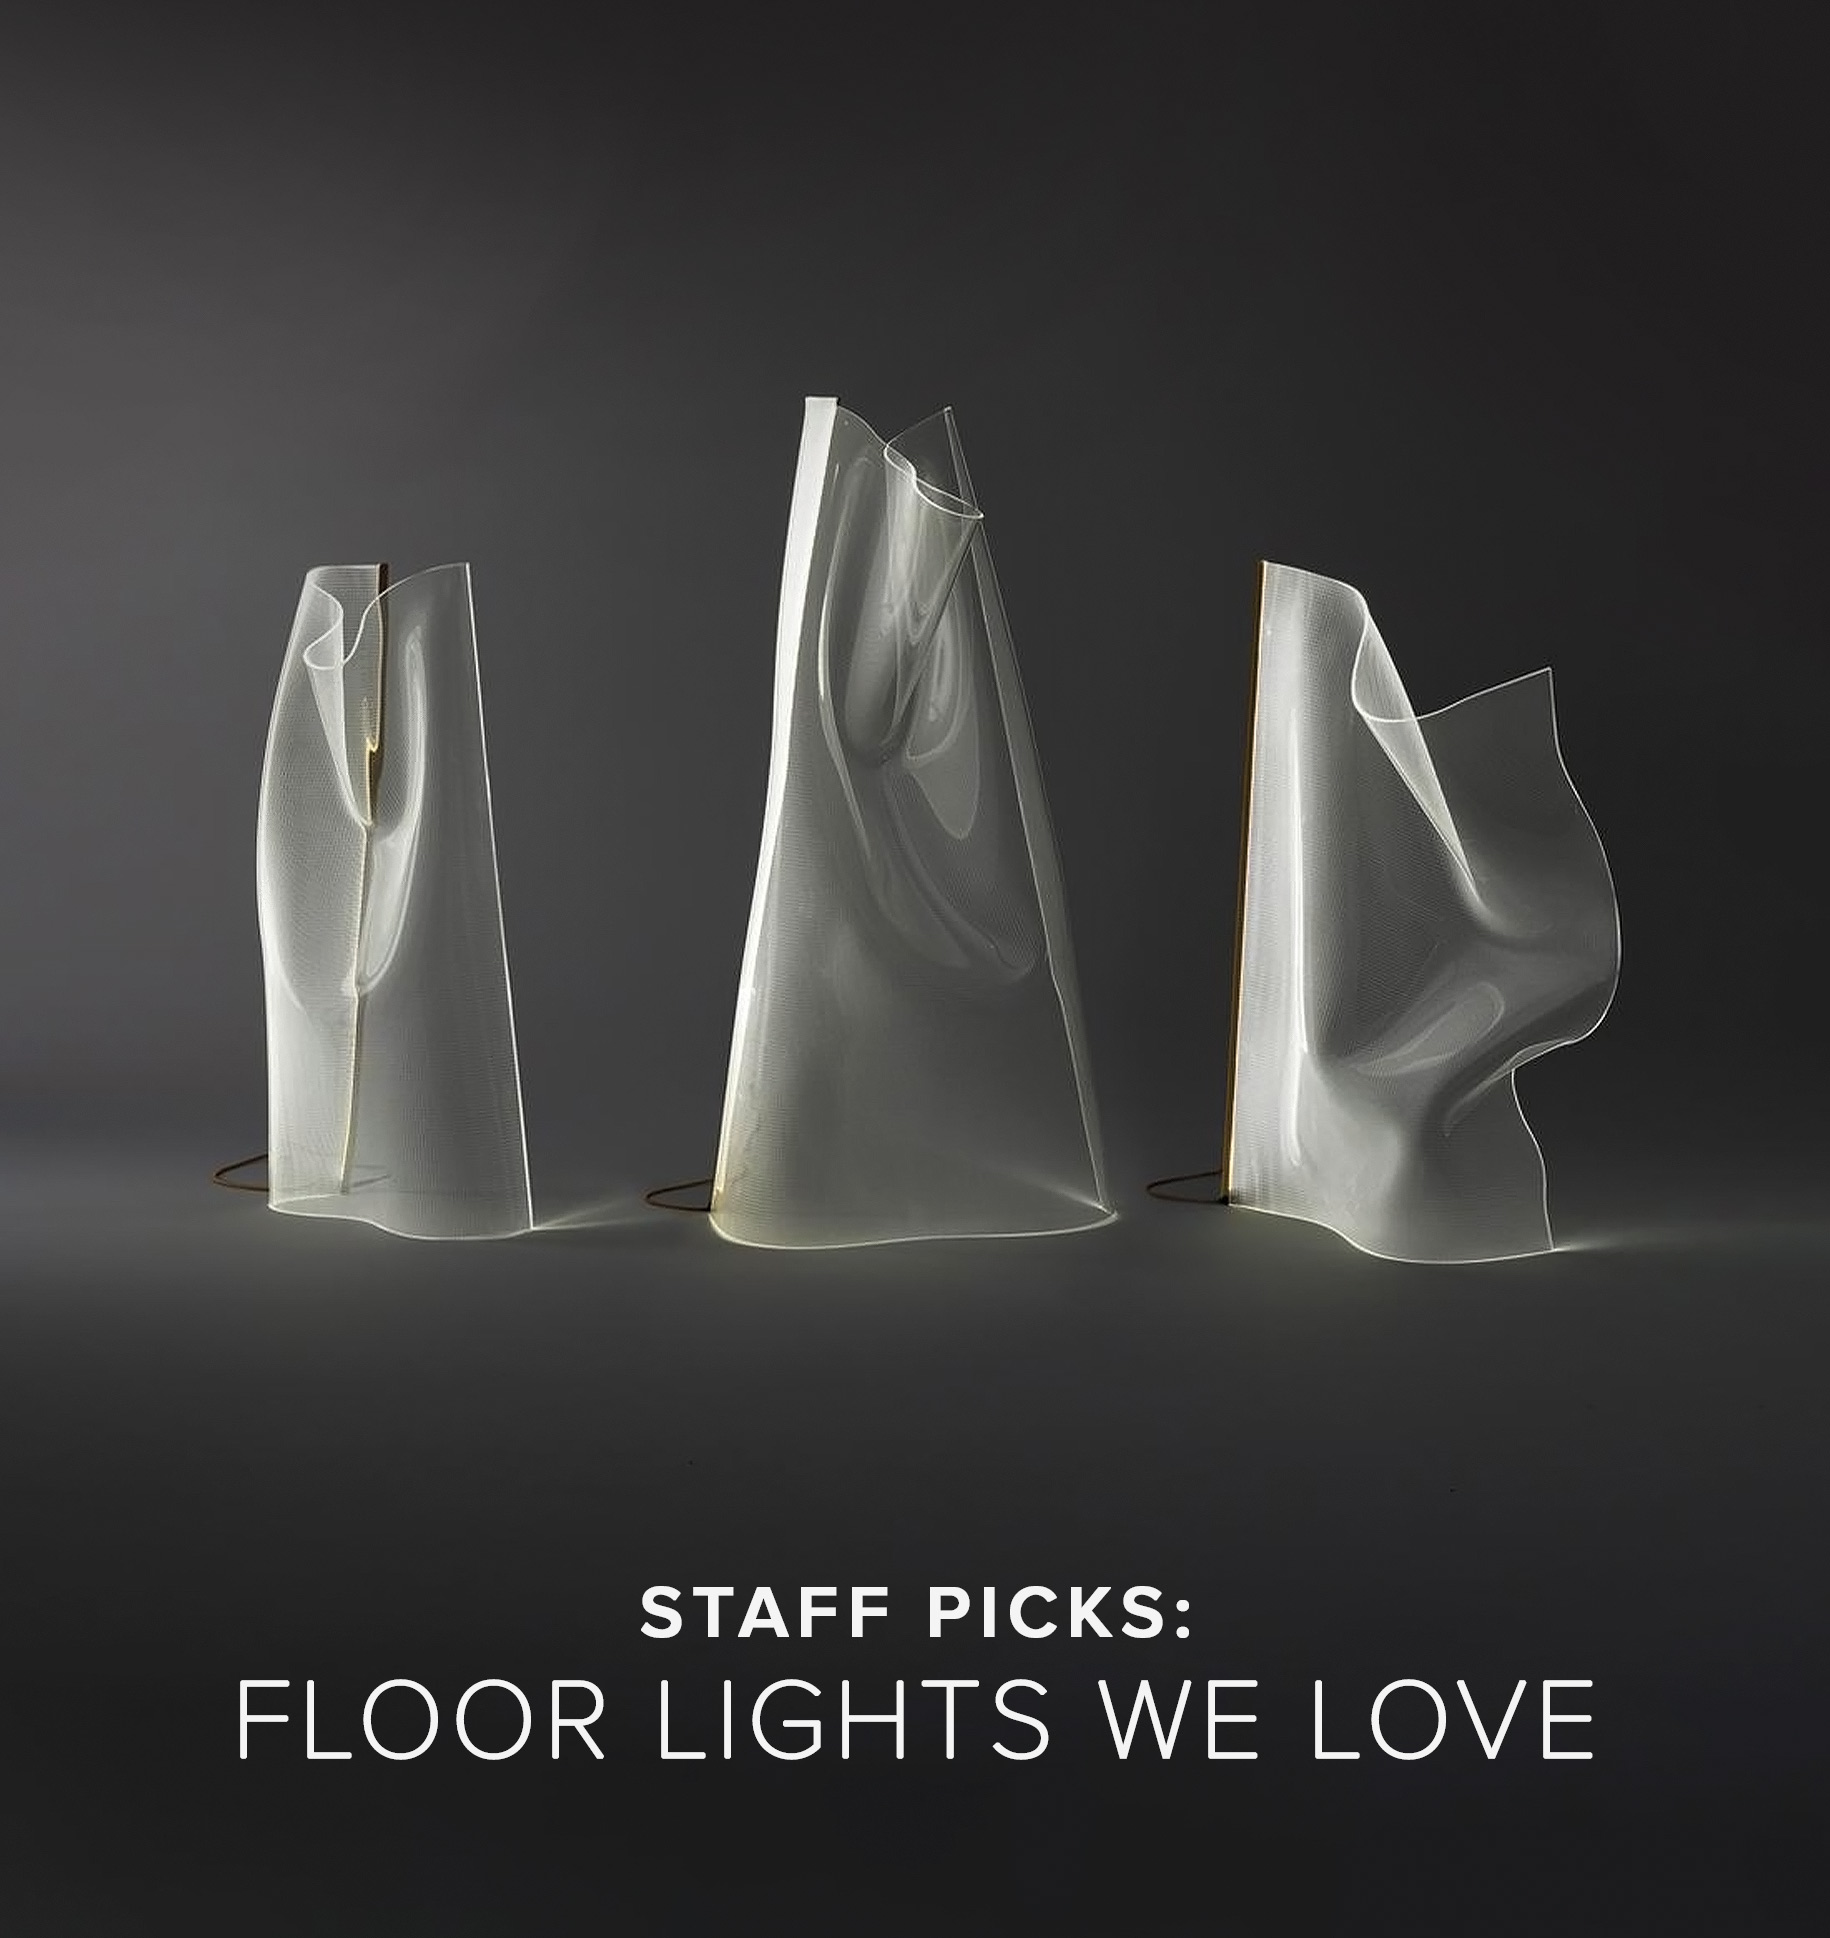 Staff Picks: Floor Lamps